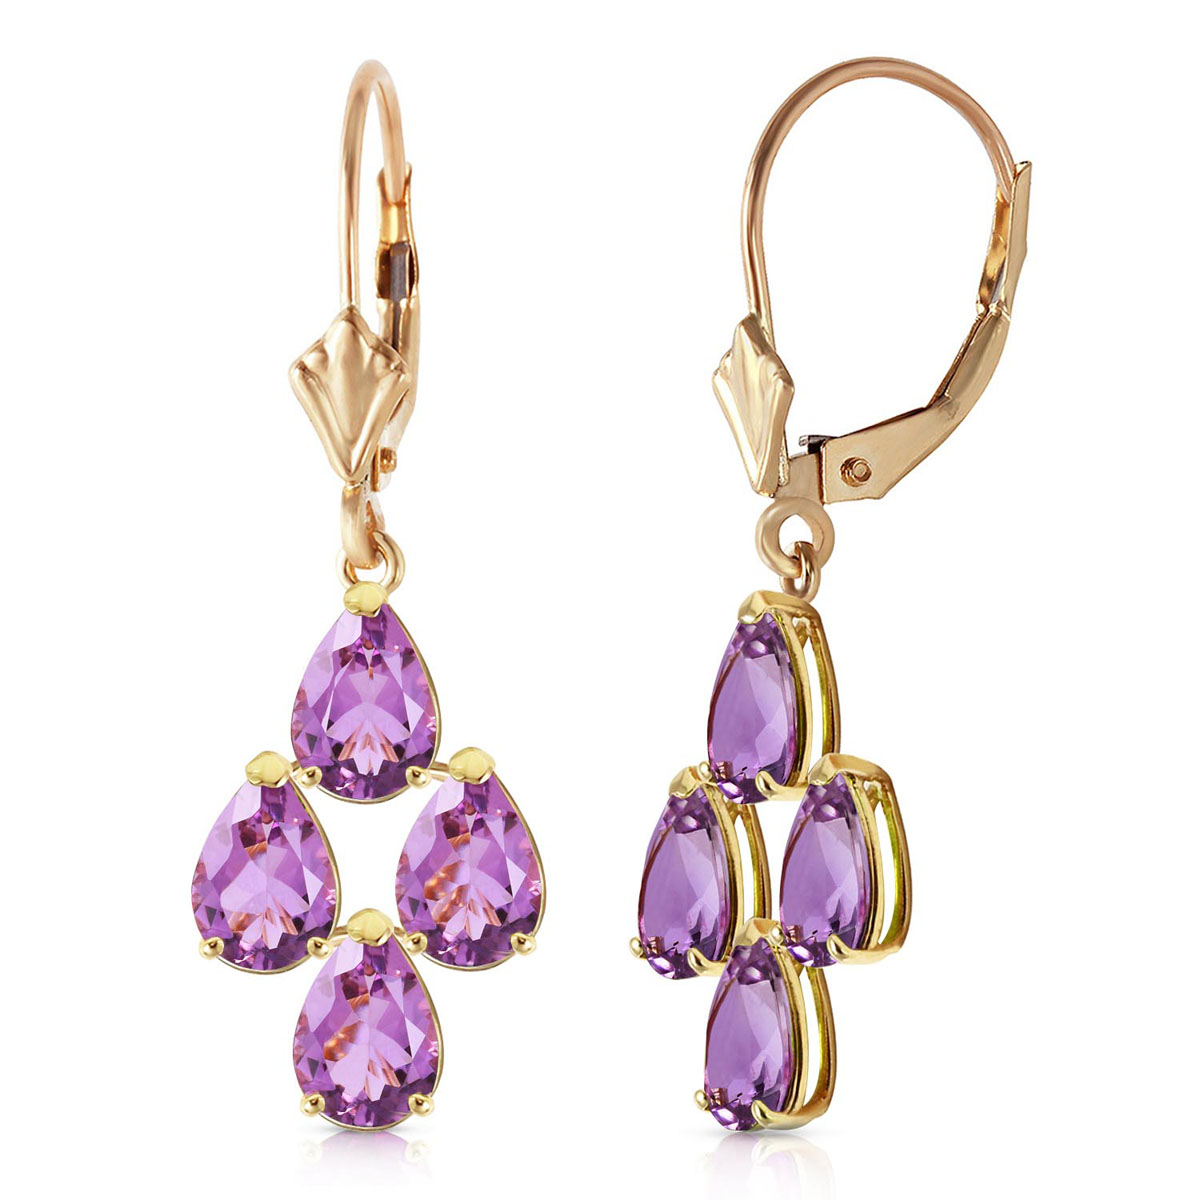 Amethyst Drop Earrings 3 ctw in 9ct Gold